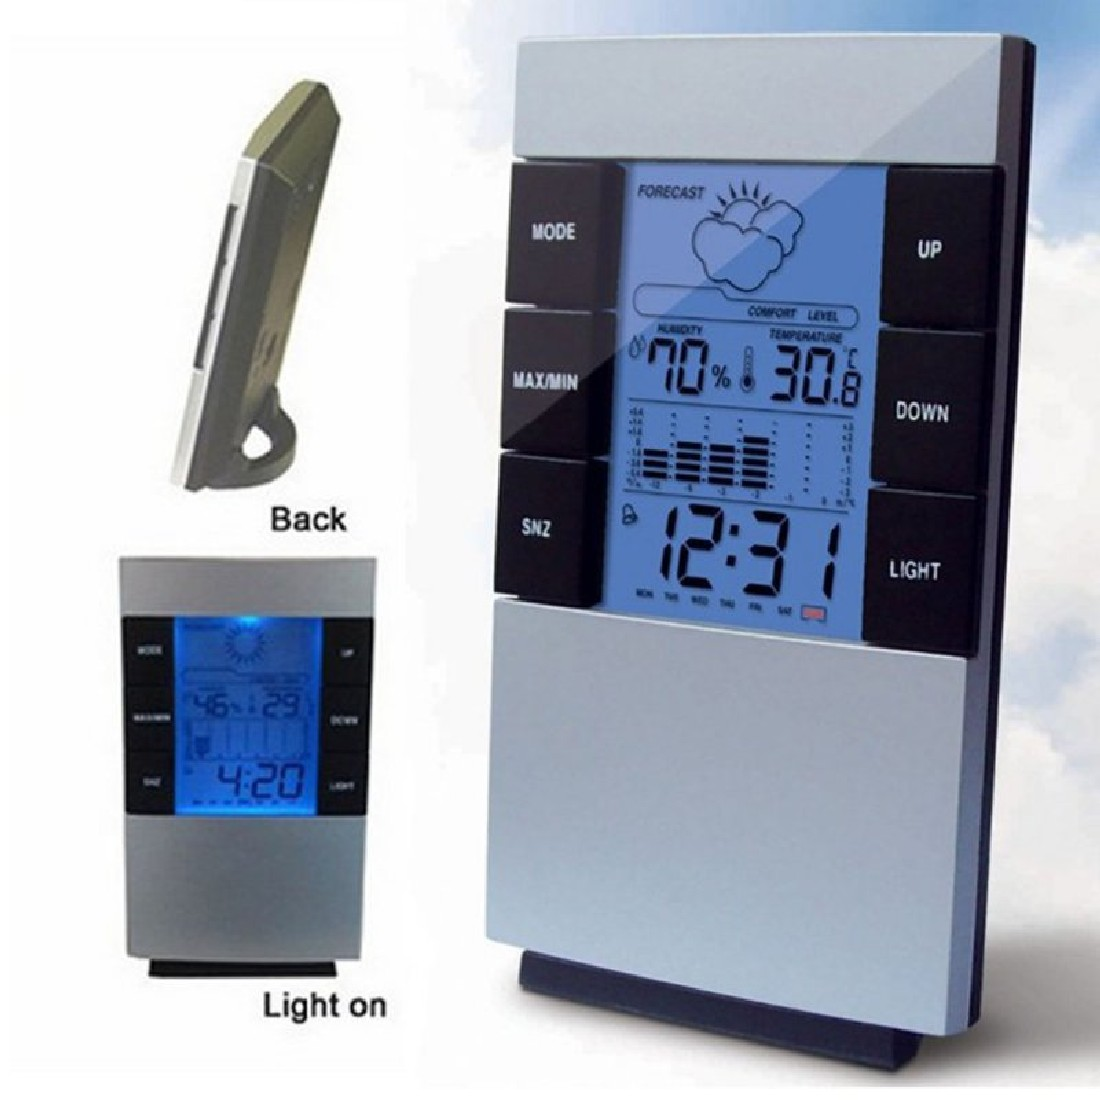 LCD Digital Hygrometer Temperature Meter Clock Measurement Device Multifunctional Home Humidity Thermometer multifunctional home humidity thermometer lcd digital hygrometer temperature meter clock measurement device